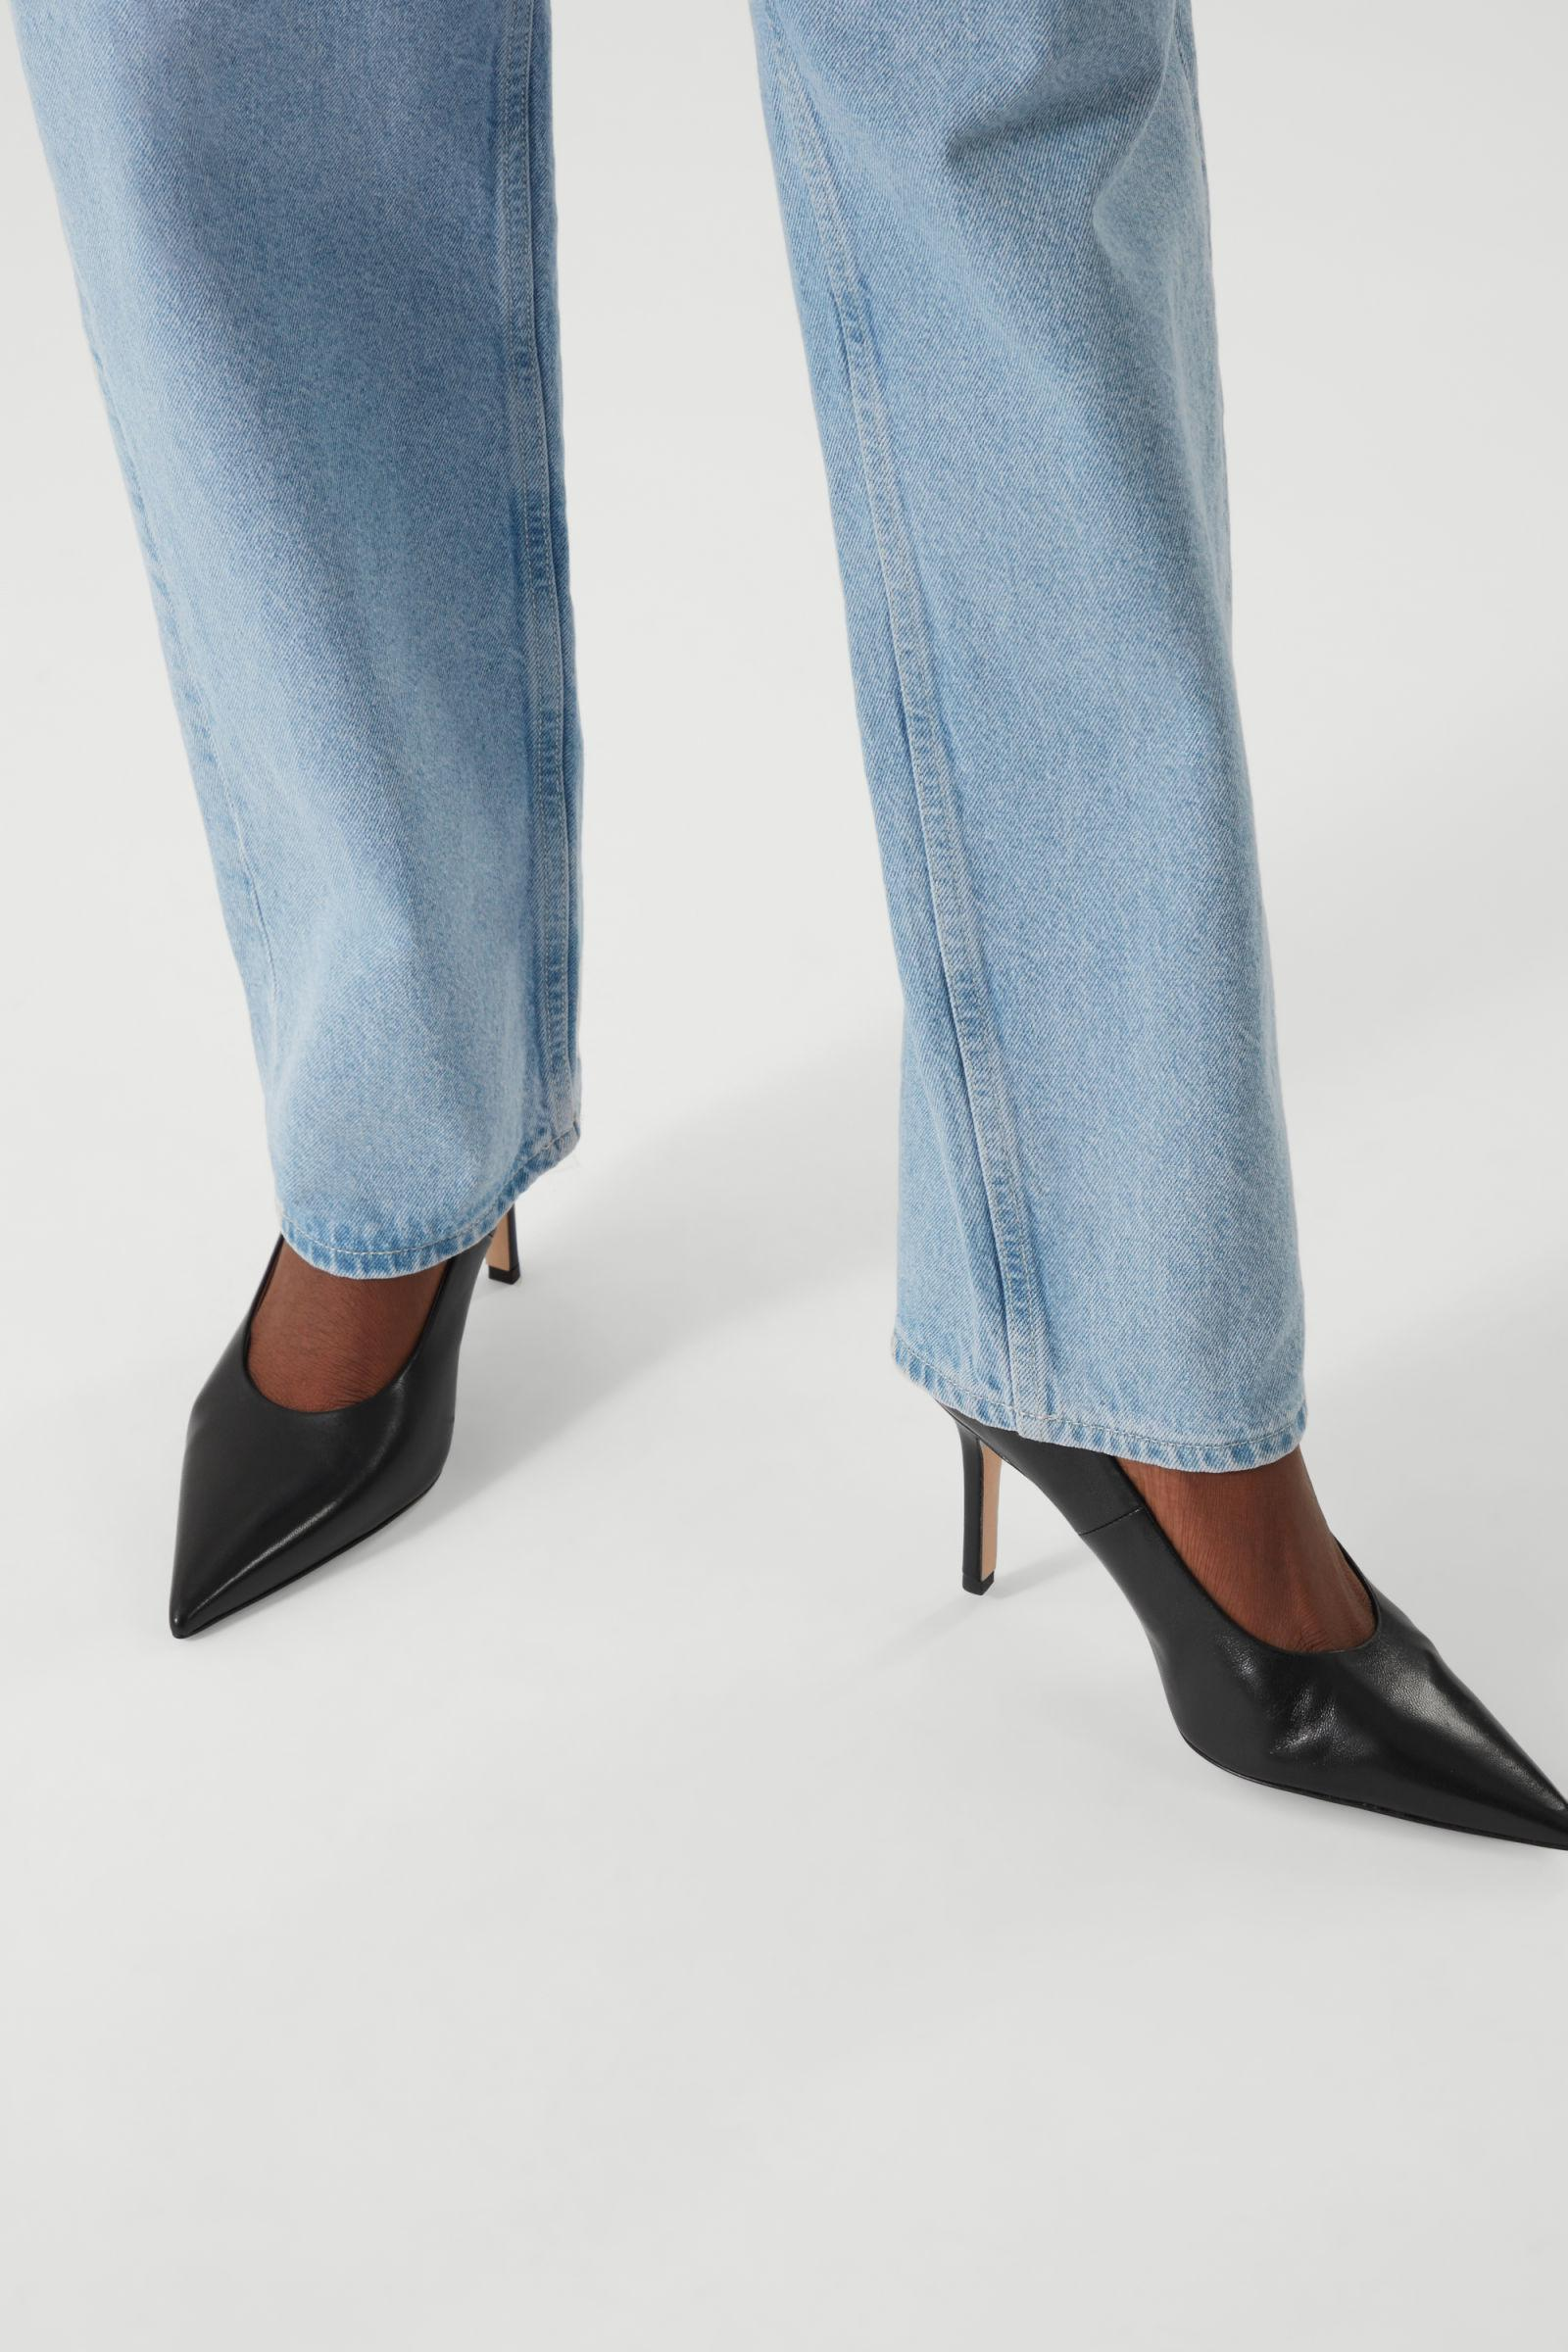 POINTED LEATHER HIGH HEELS 5